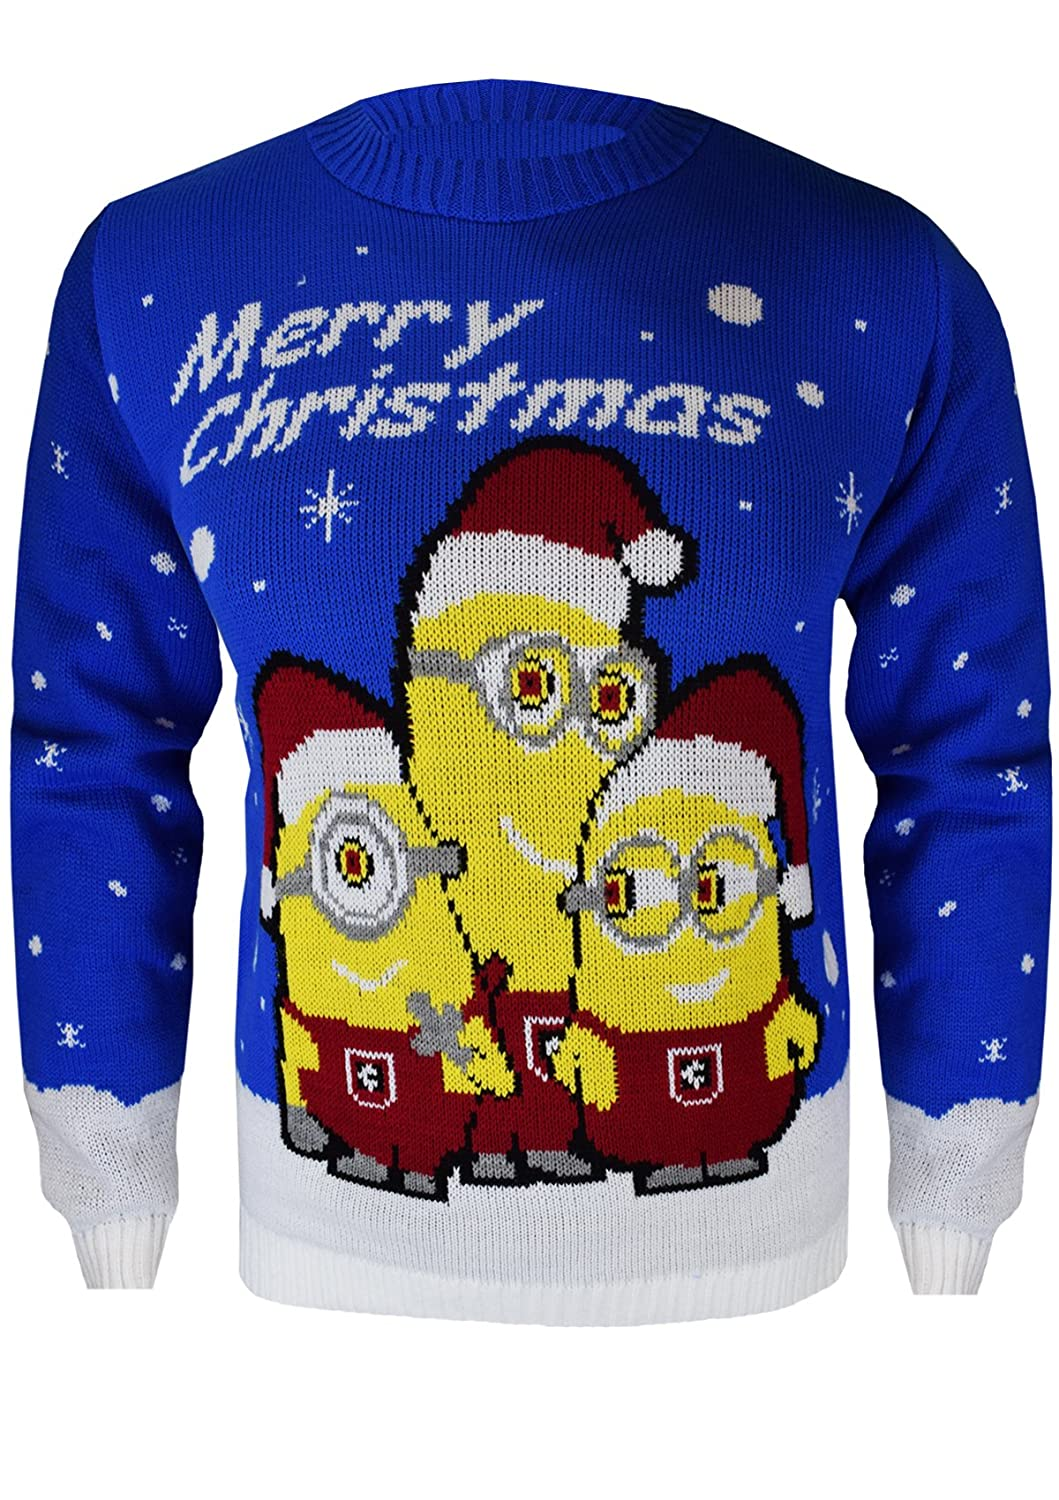 SA Fashions® Kids Boys Girls Children Knitted Xmas 3 Minion Christmas Banana Snow Flakes Retro Novelty Jumper Sweater Santa Size Top Age 5-13